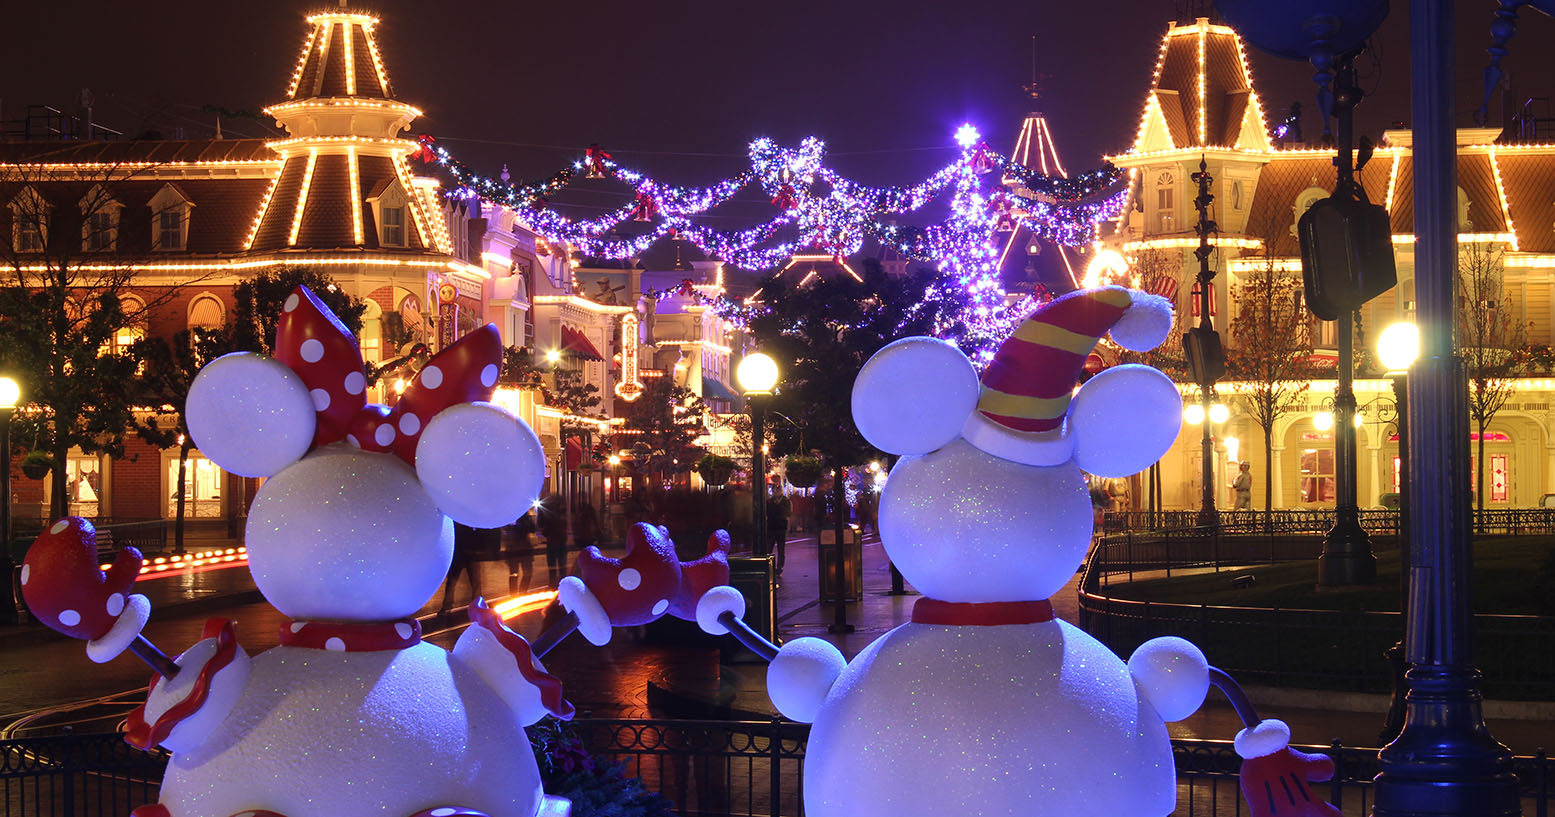 Christmas on Main Street in Disneyland Paris